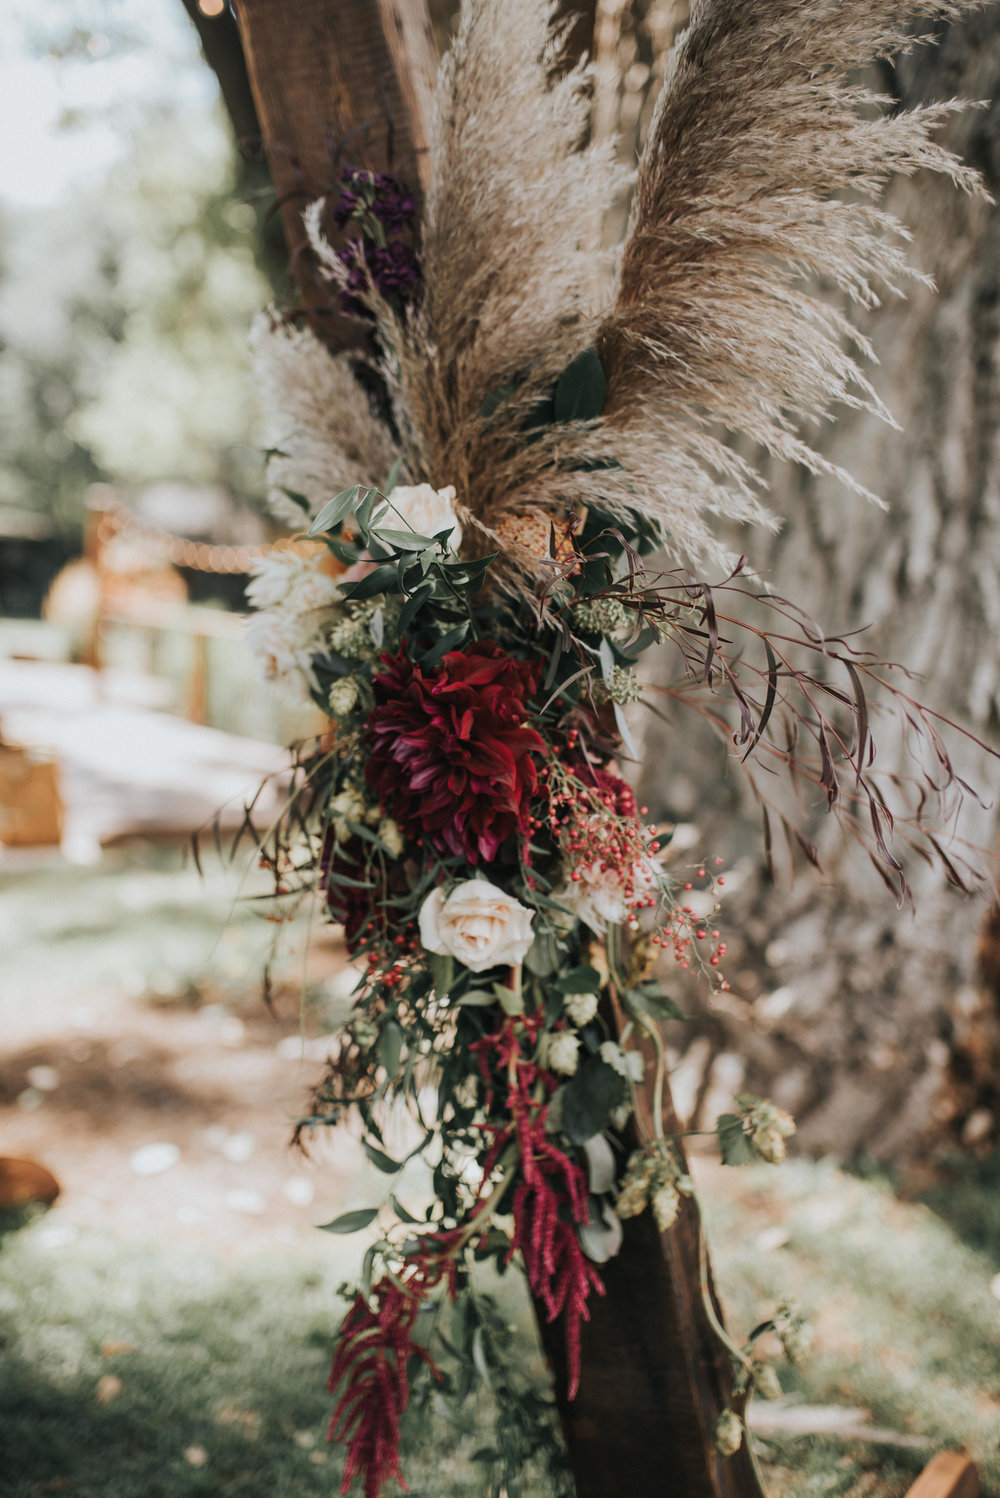 Flowers by Lace and Lilies, wedding flowers, jewel tones, pampas grass, hops, texture, colorado wedding, a-frame arch, arch flowers, altar flowers, ceremony flowers, moody toned wedding, pampas grass